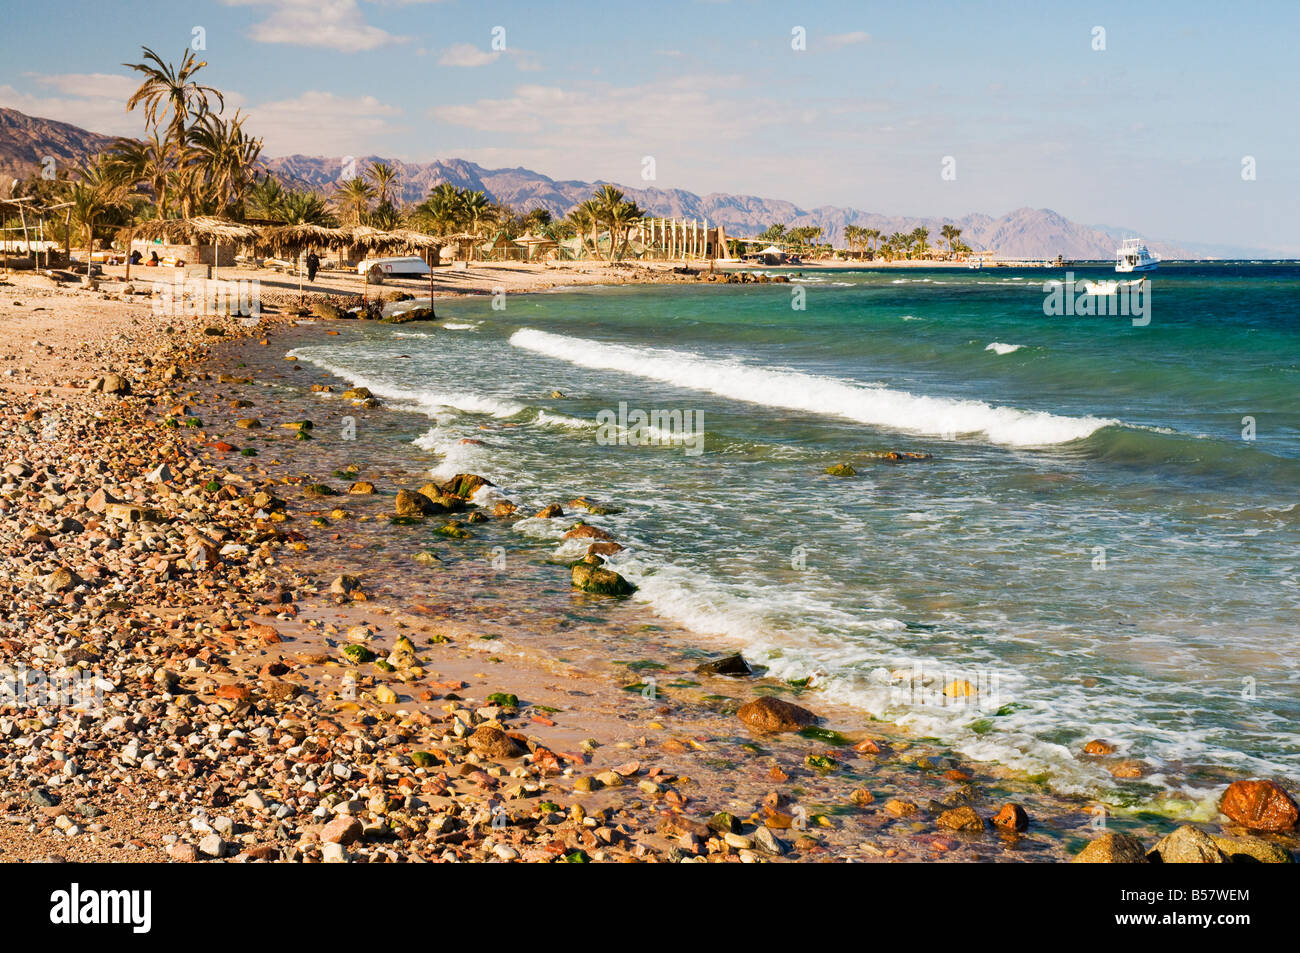 Beach and Gulf of Aqaba, Nuweiba, Sinai, Egypt, North Africa, Africa - Stock Image